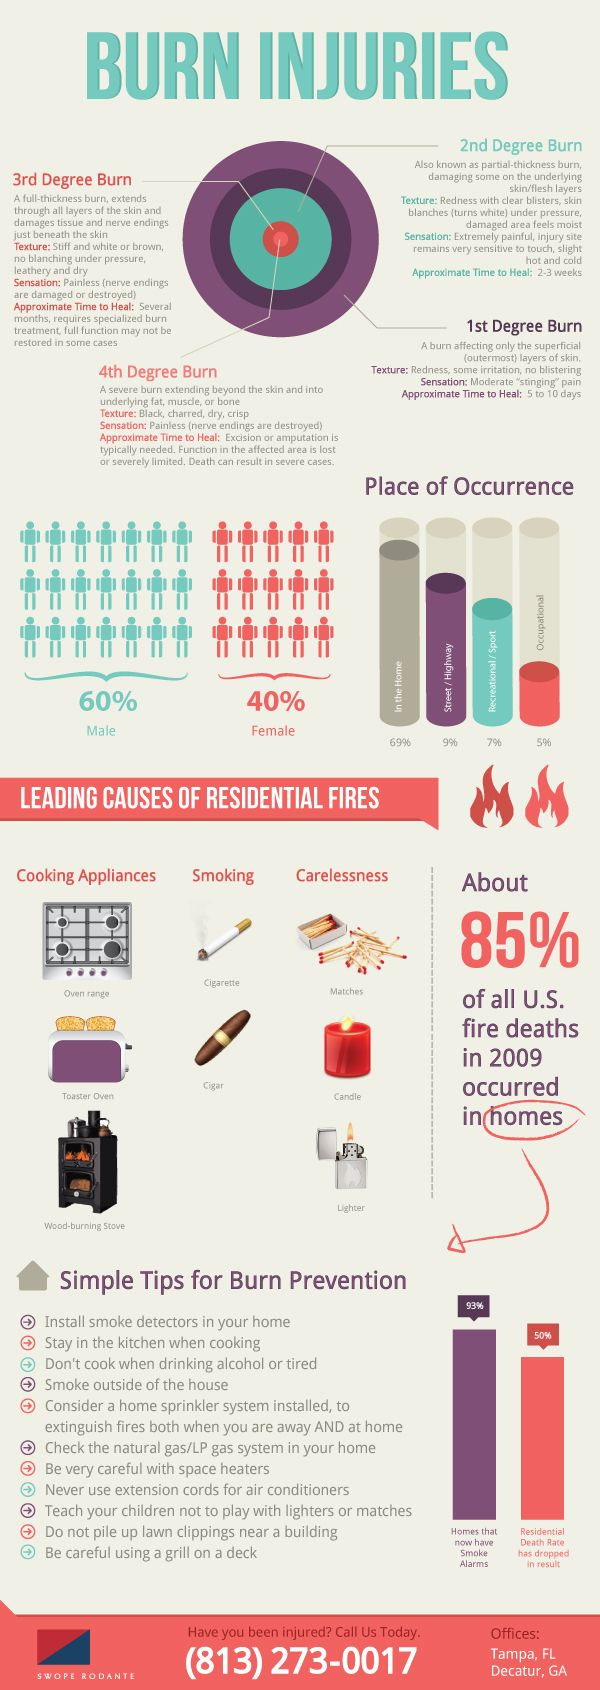 Wound clipart burn injury Injuries burn on Infographic Fire